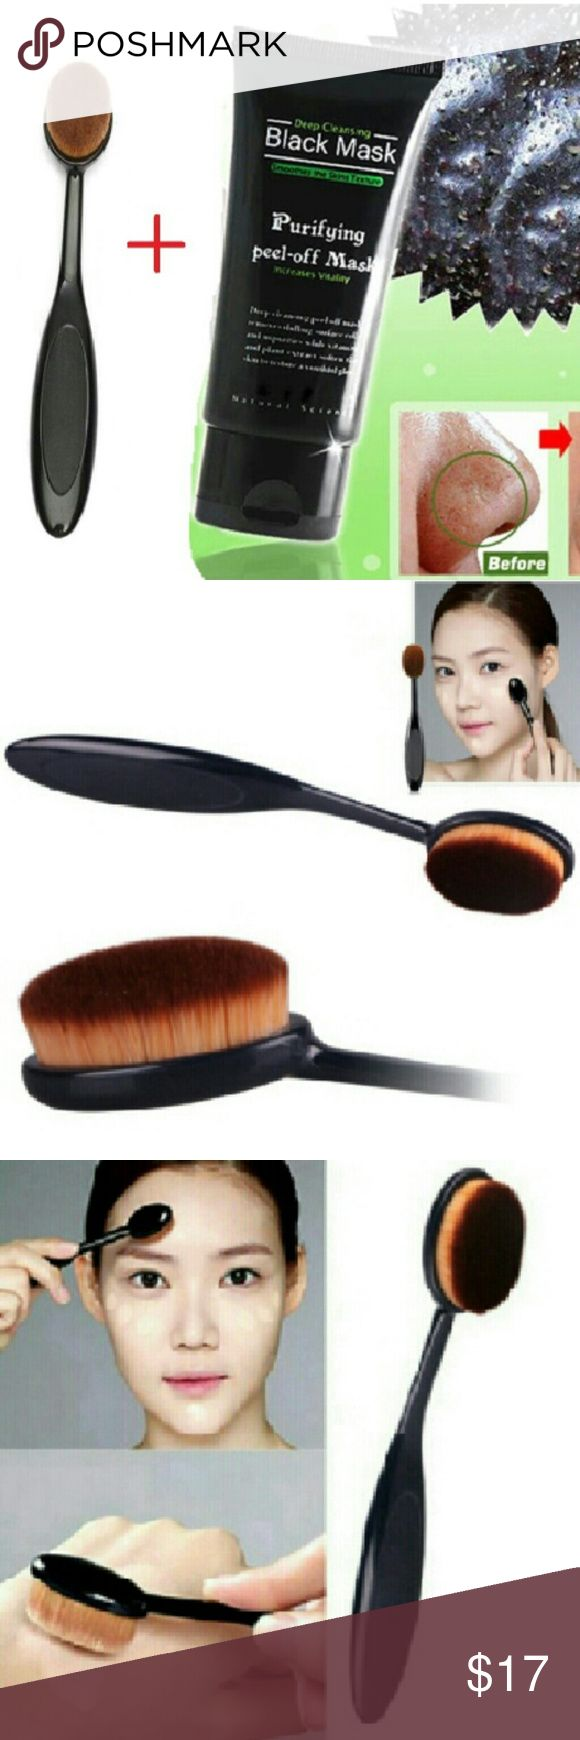 Blackhead Remove Acne Mask + Foundation Brush Tool Specification :50 g/branch Usage :Dry the cleansed area and apply the masque on desired area(avoid eyebrow,eyes,and lips).peel it off after 20-30 minutes.  Cosmetic Makeup Face Brush Blusher Tooth brush  Package including : 1 pc Blackhead Remover Mud Makeup Foundation